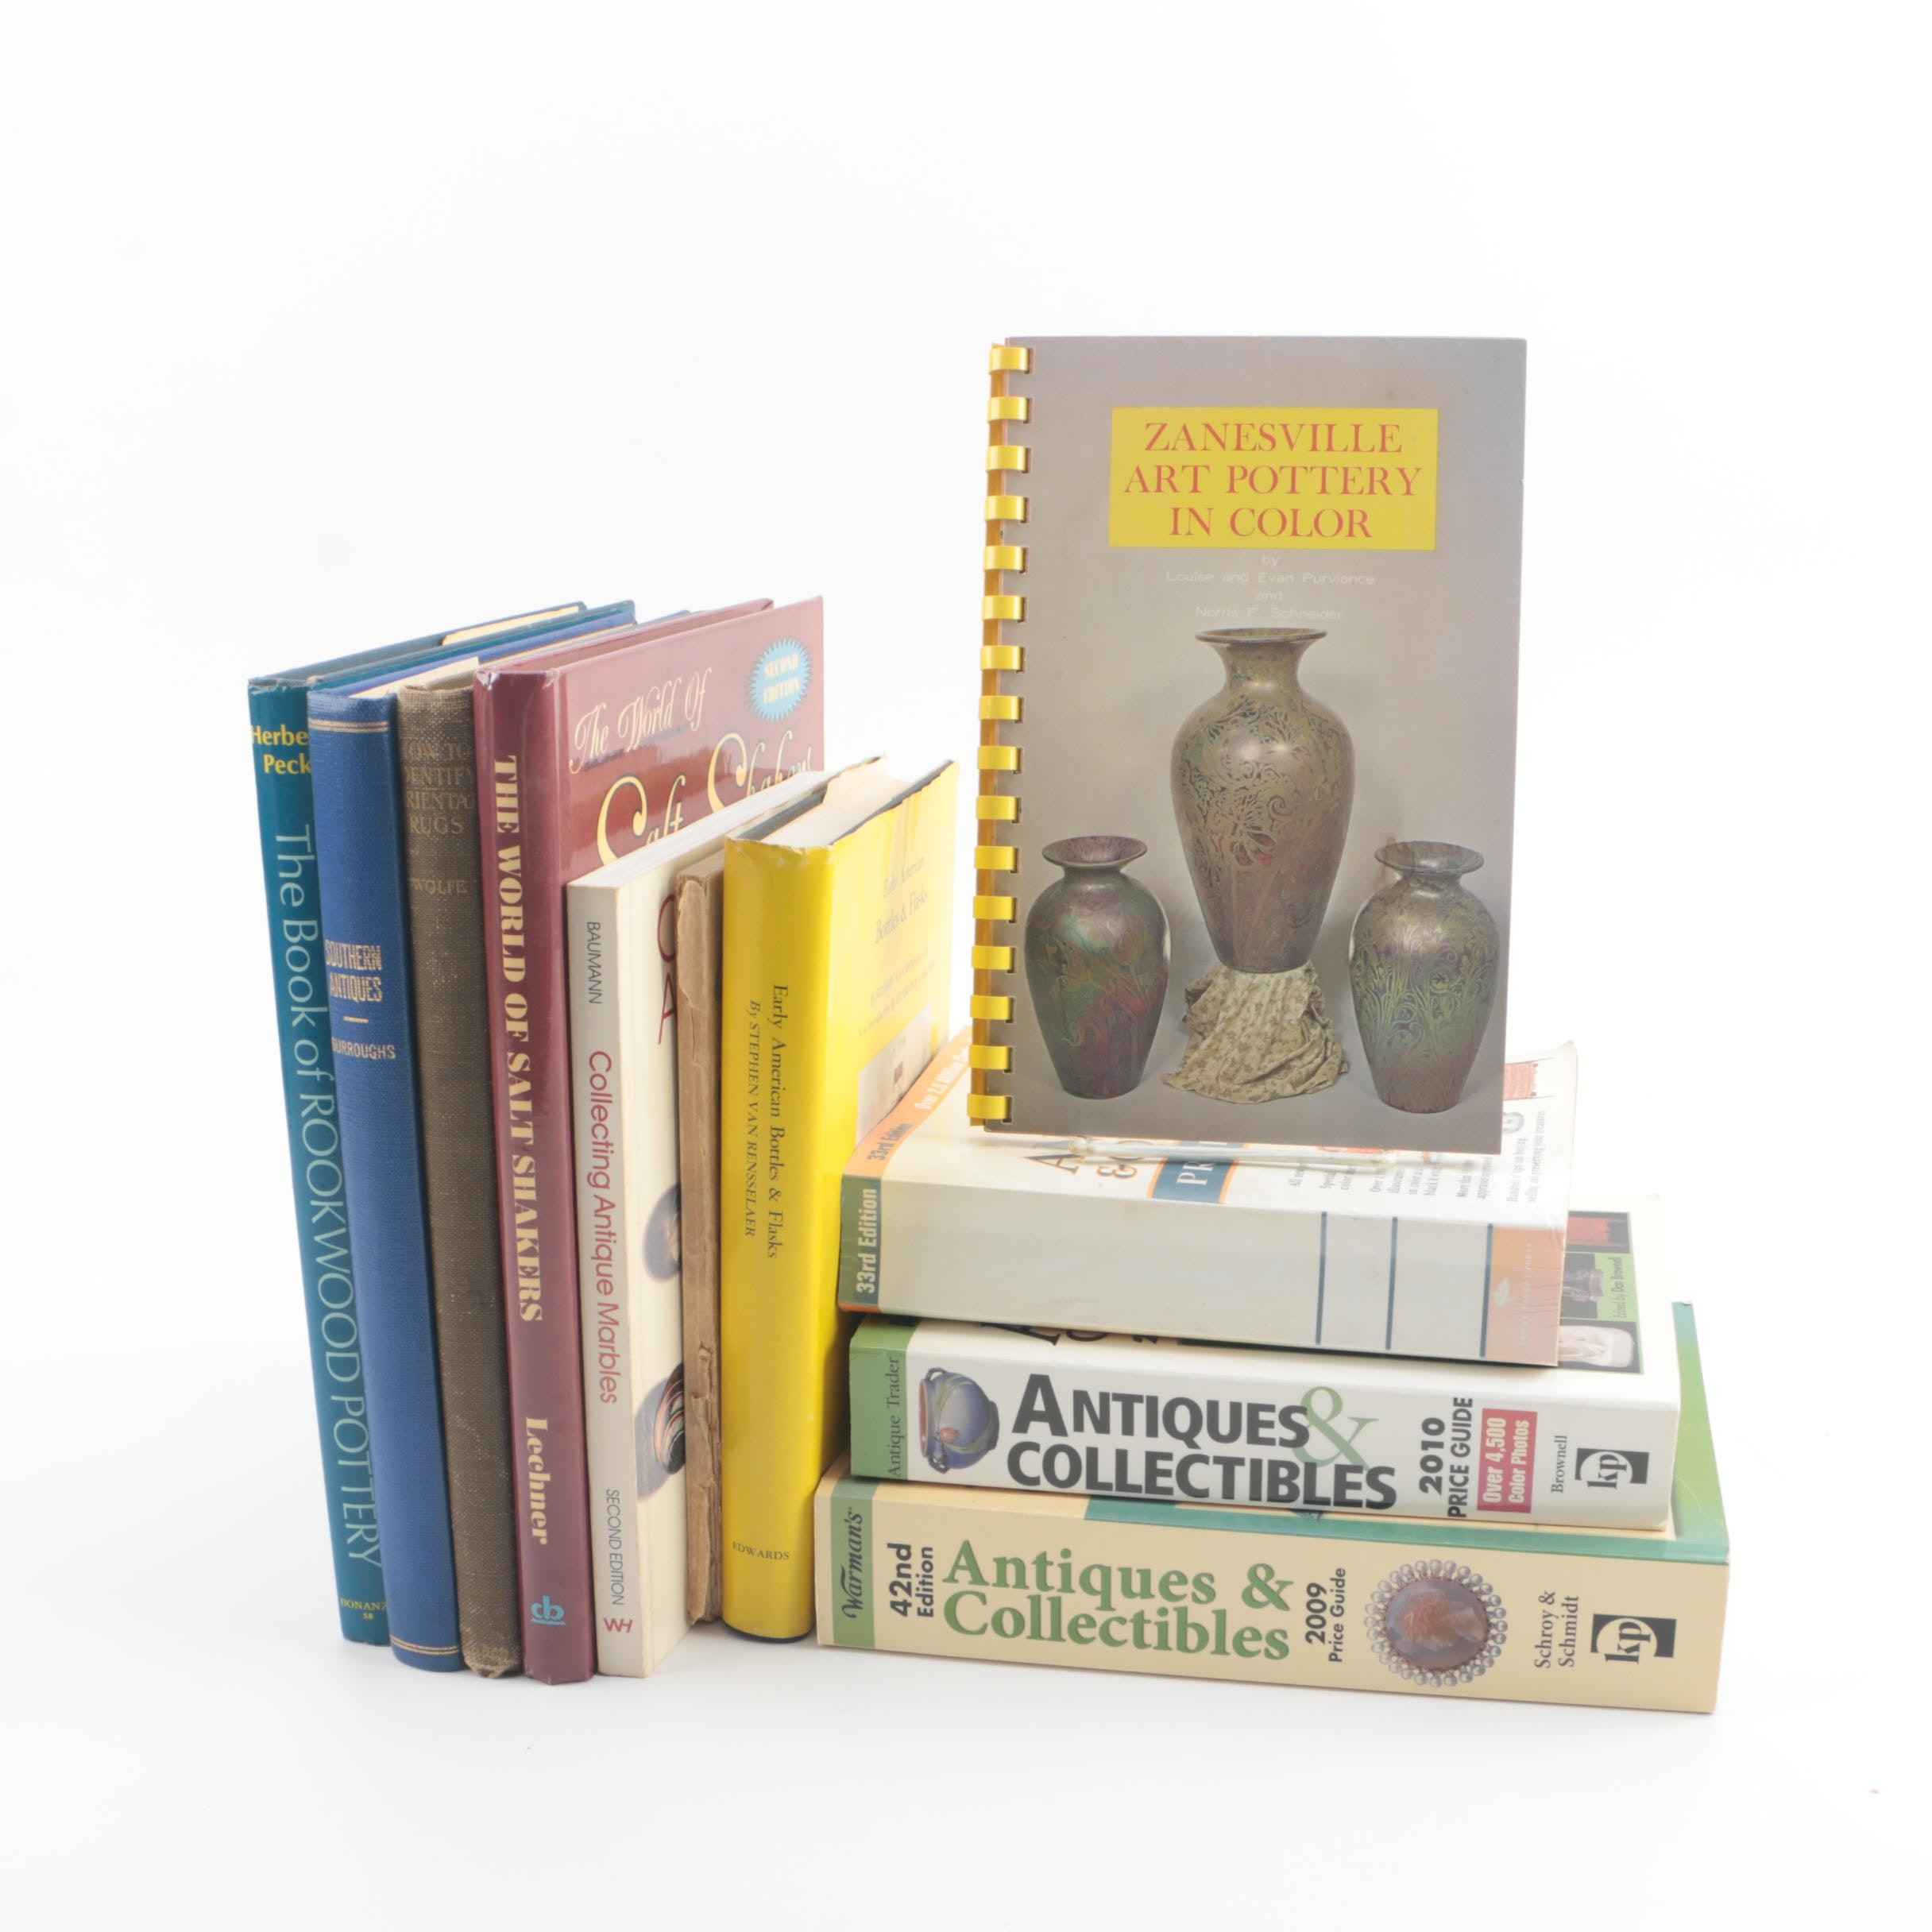 Books on Collecting Art and Antiques Including Kovels